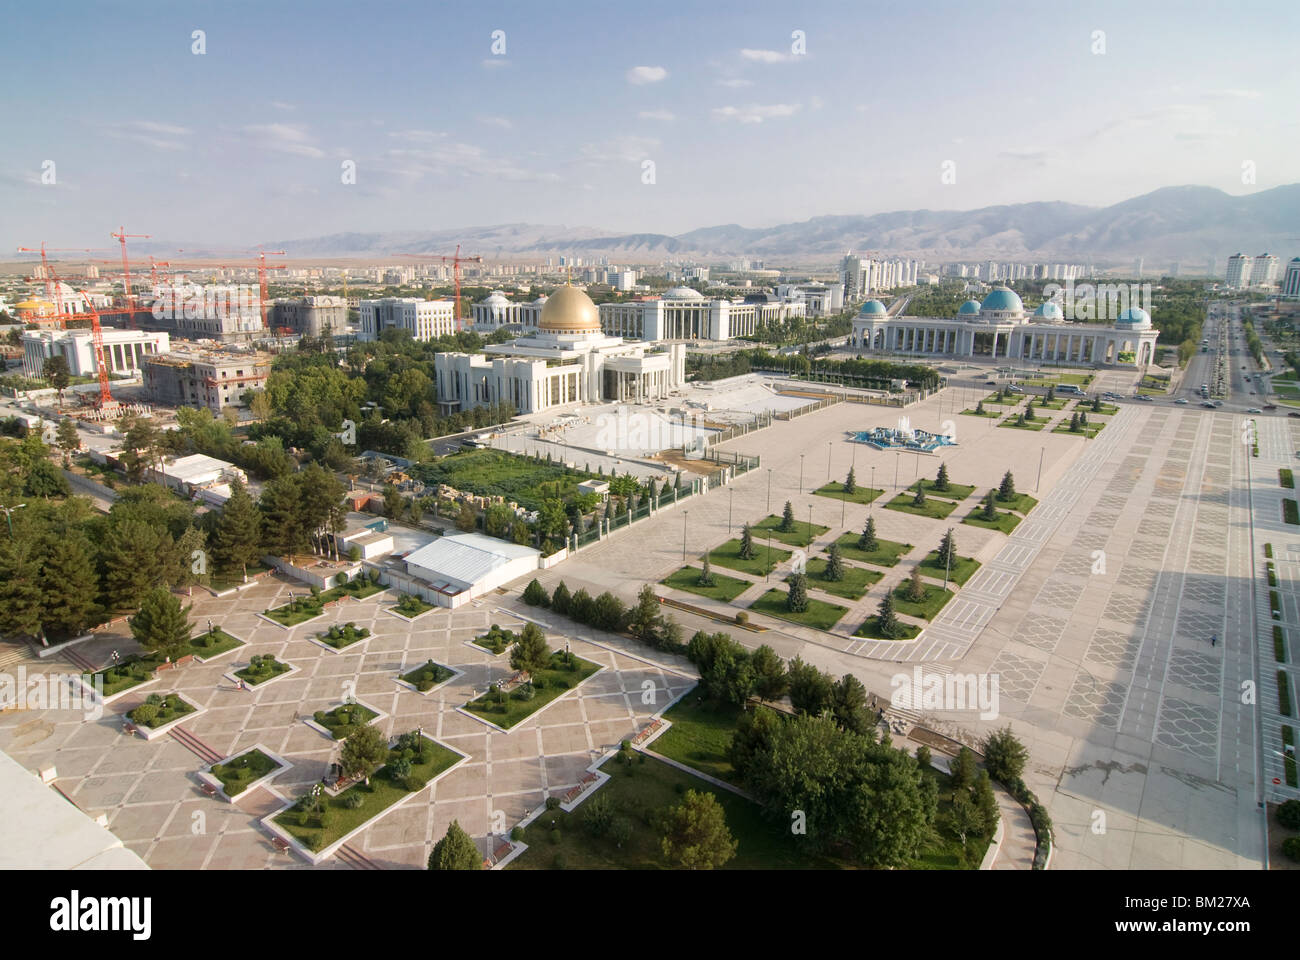 View over the government quarter and center of Ashgabad, Turkmenistan, Central Asia, Asia - Stock Image